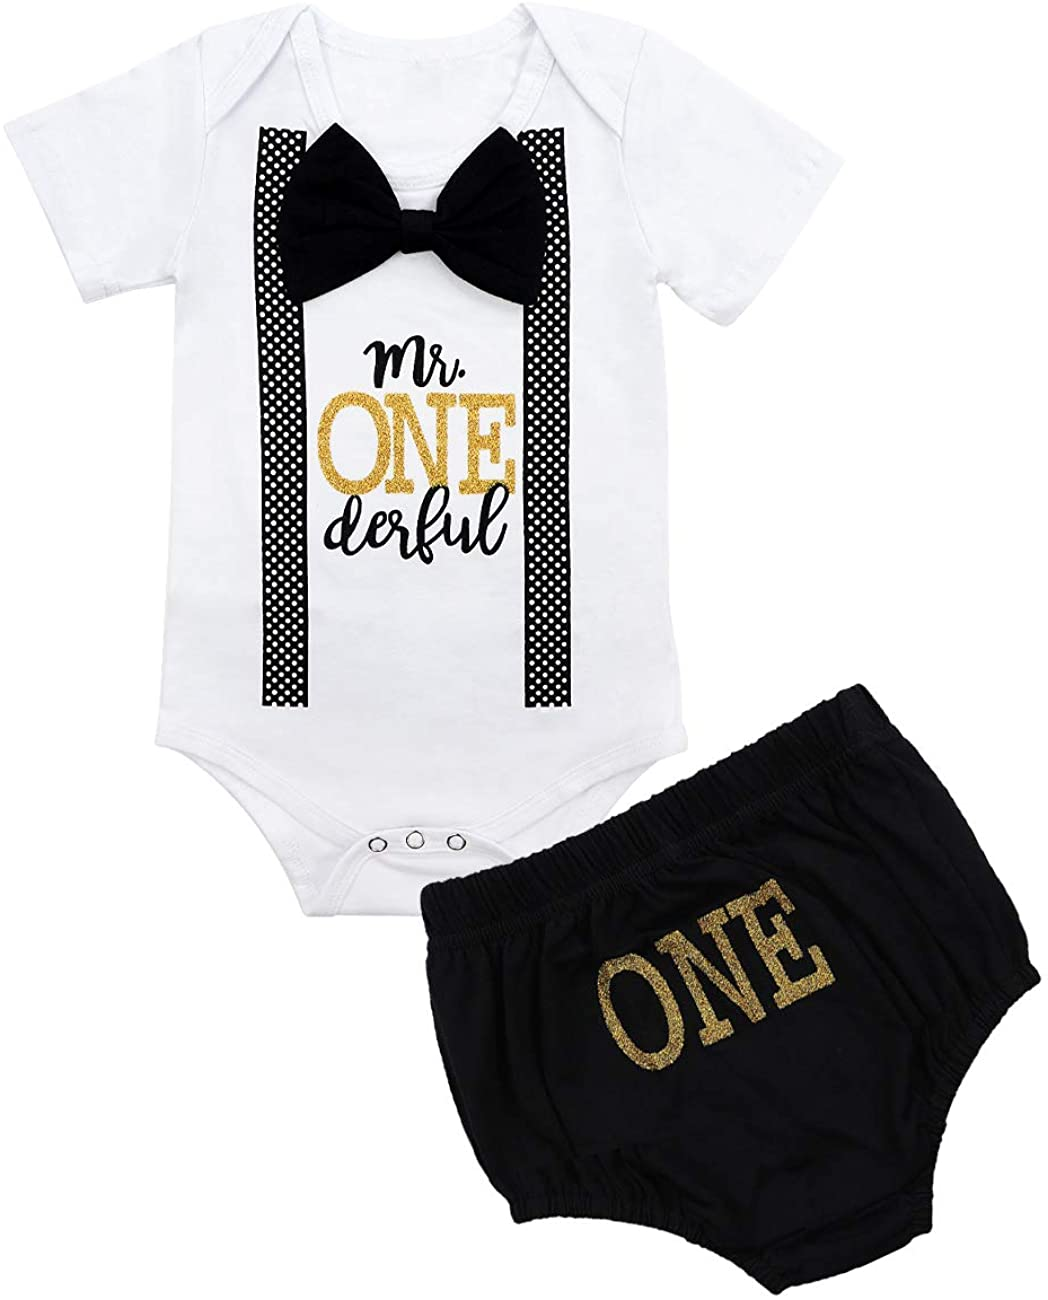 Baby Boy First Birthday Outfit Mr Onederful Bowtie Romper + Shorts Bodysuit Cake Smash Outfits